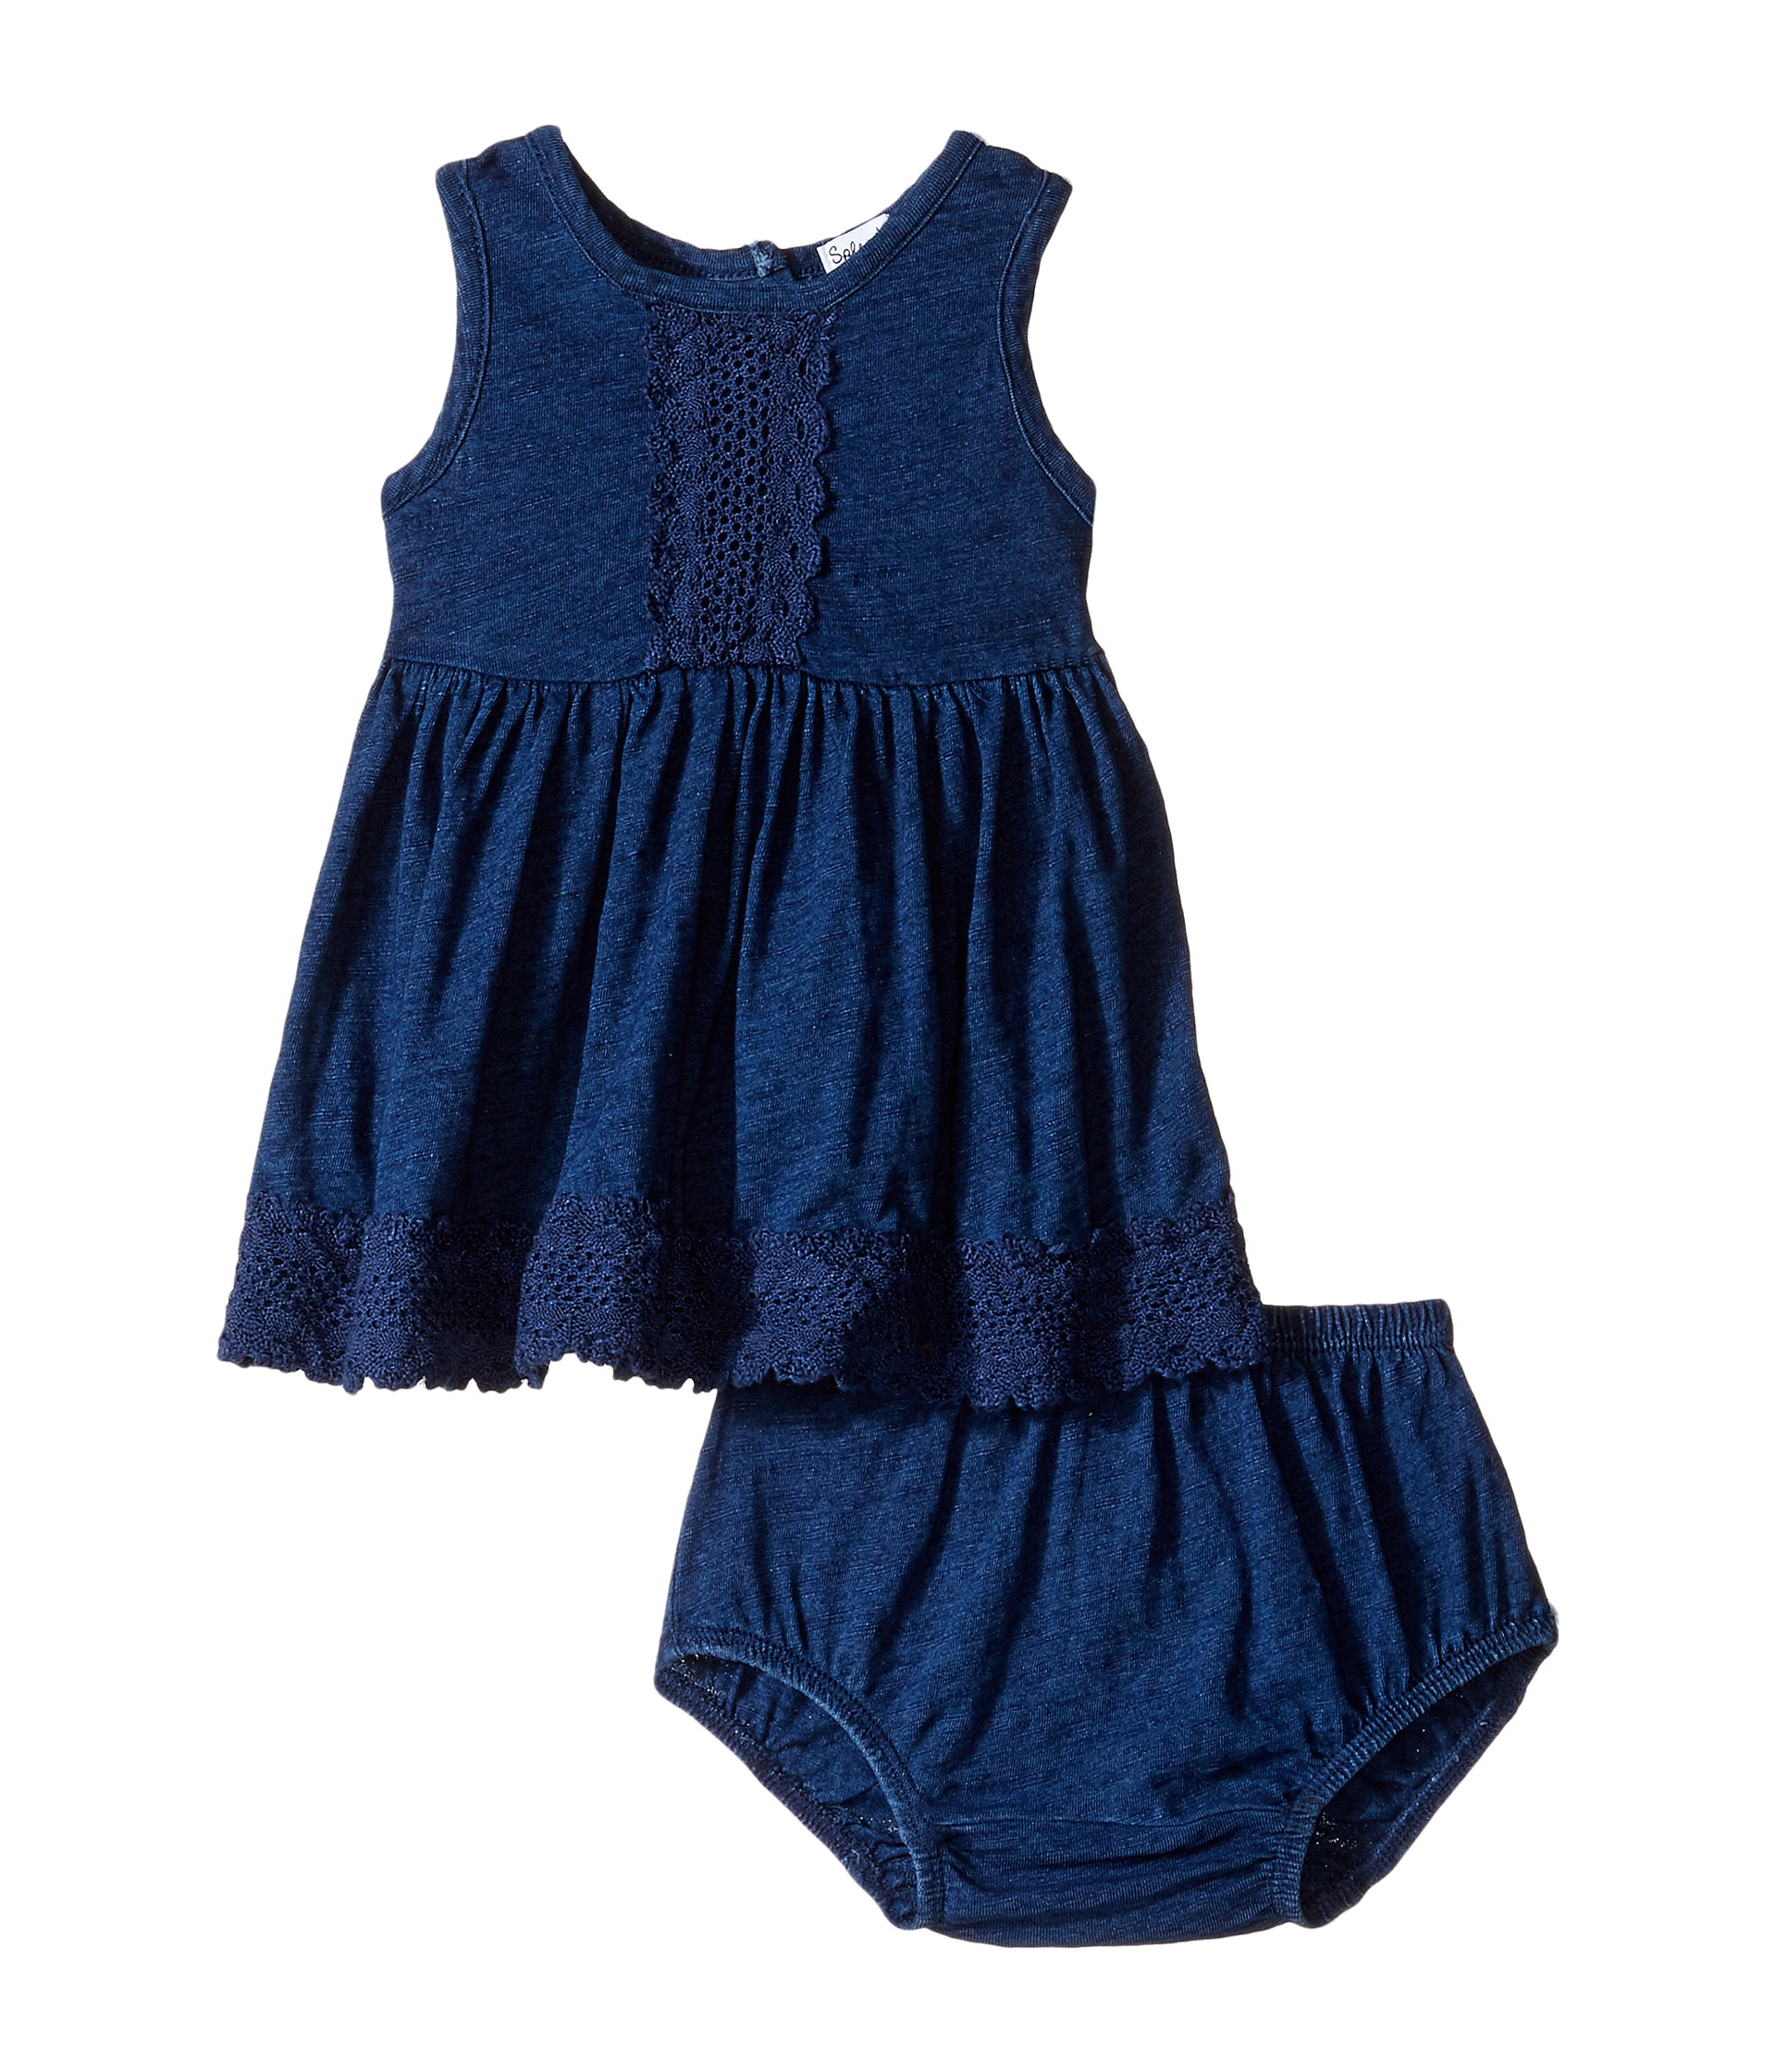 Splendid Littles Indigo w Lace Trim Dress Infant at